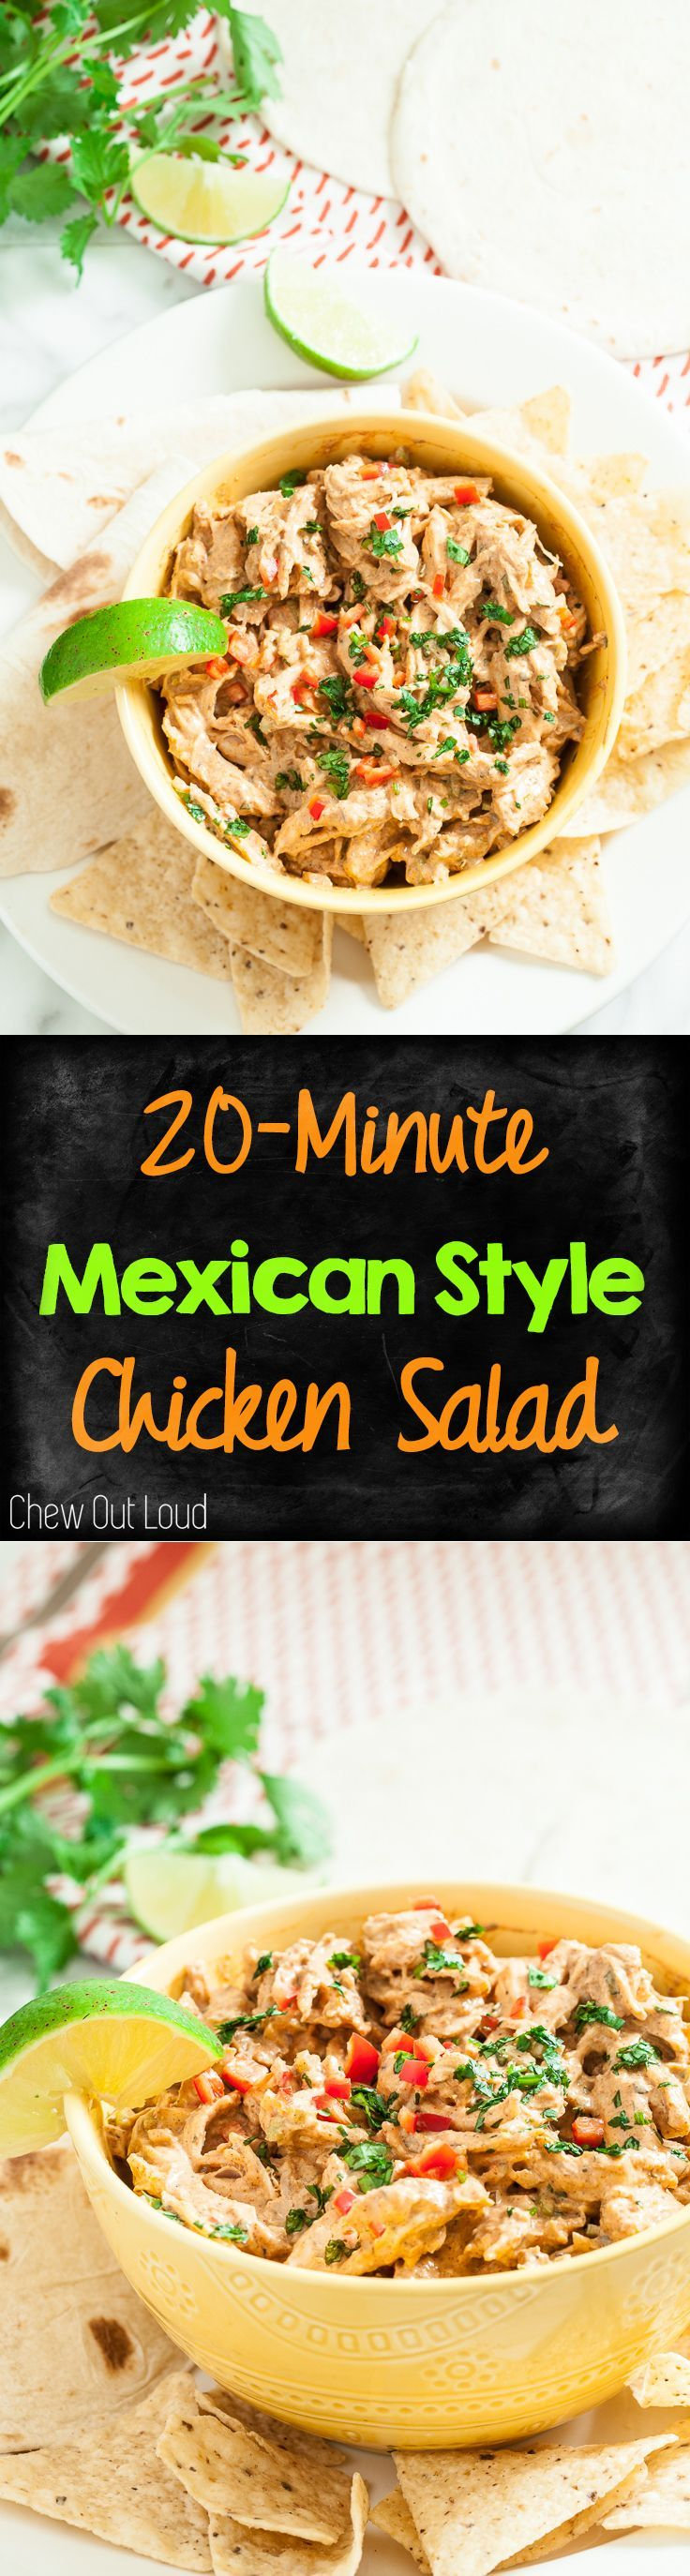 Mexican Style Chicken Salad is great for weekday meal prep, potlucks, and parties alike. So easy and tasty! #mexican #chicken #salad www.chewoutloud.com